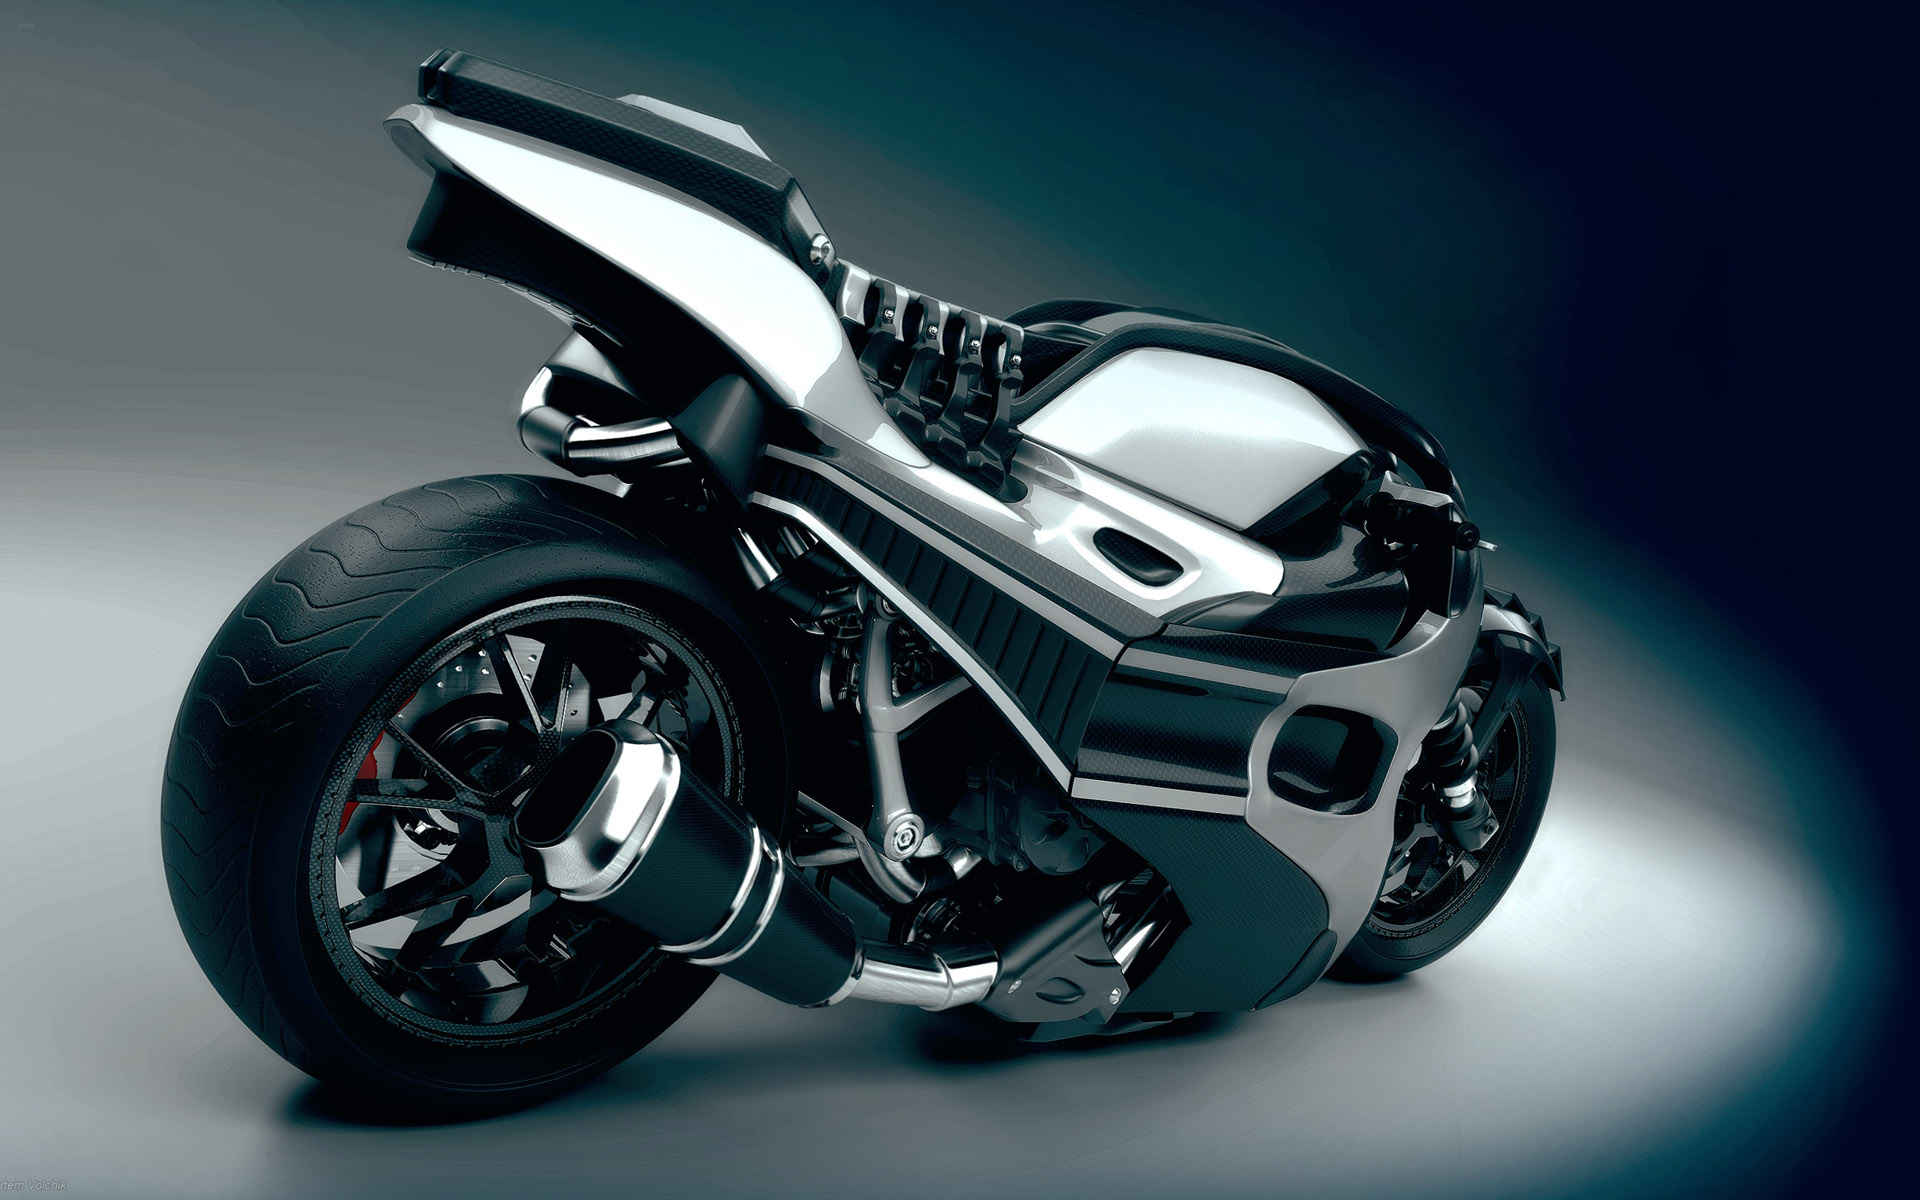 2015 bike model racing hd wallpaper search more high definition 1080p 1920x1200